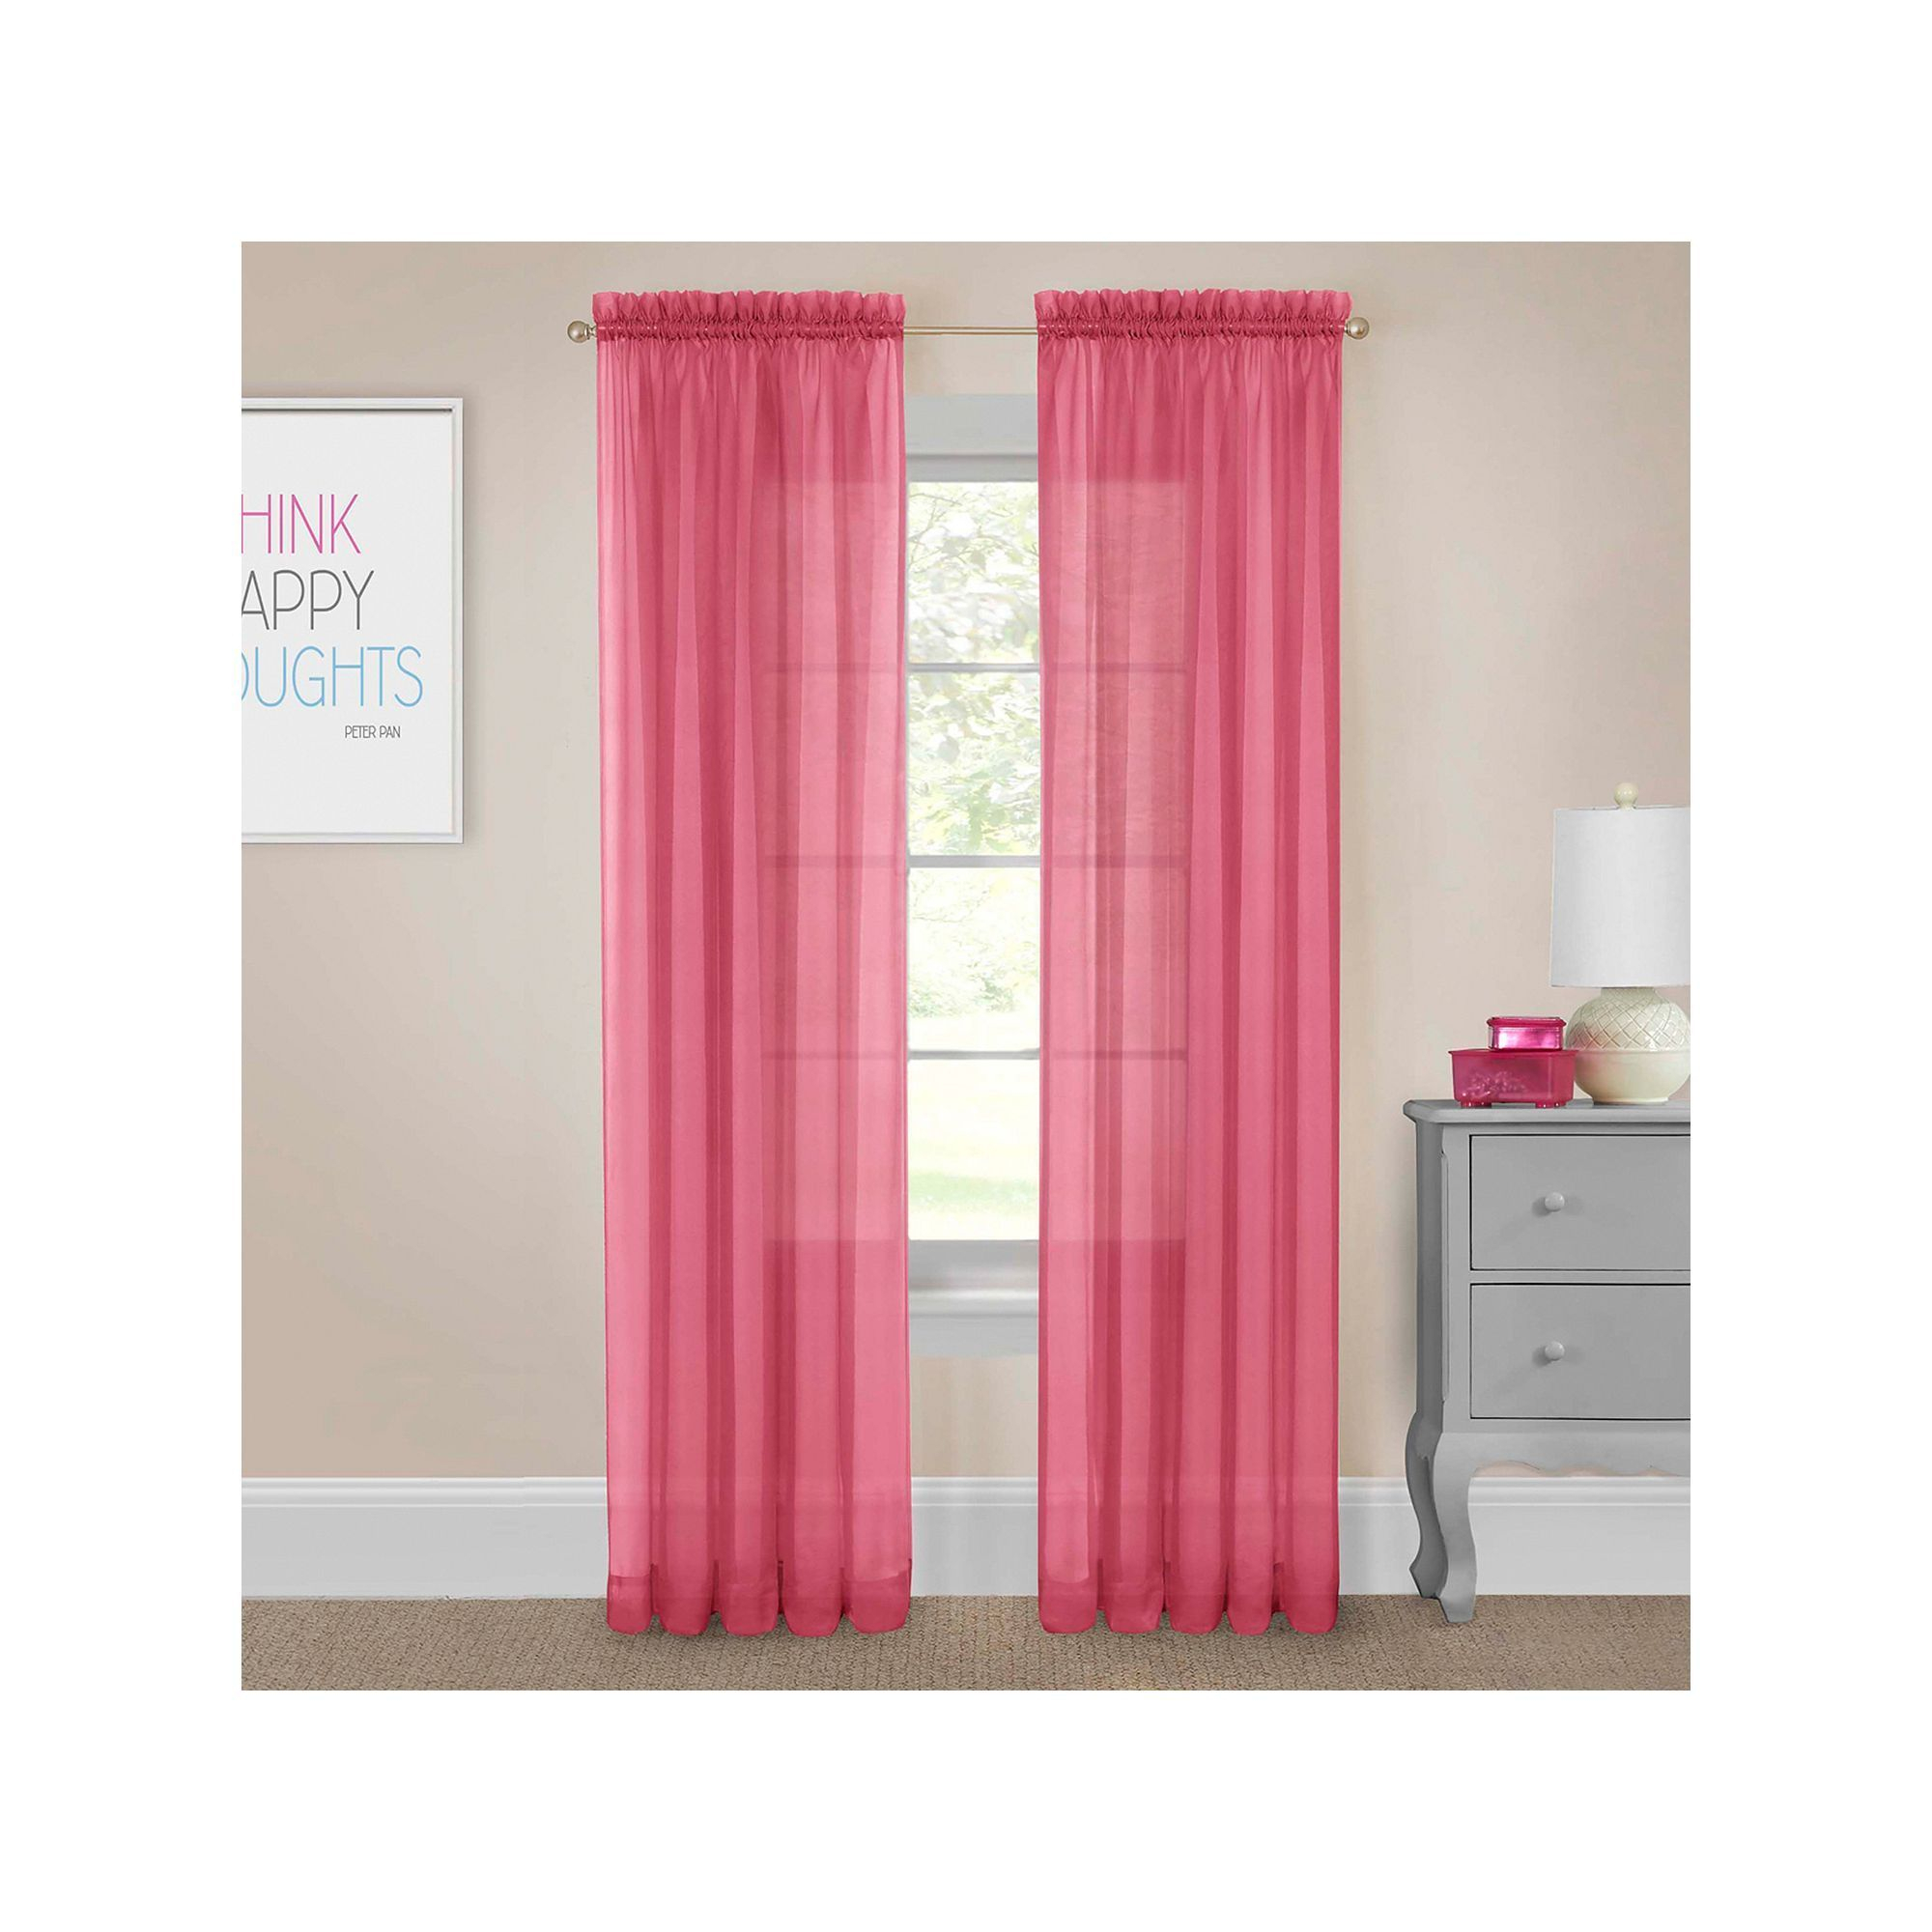 Pairs To Go 2 Pack Victoria Voile Window Curtains, Pink Within Pairs To Go Victoria Voile Curtain Panel Pairs (View 9 of 20)